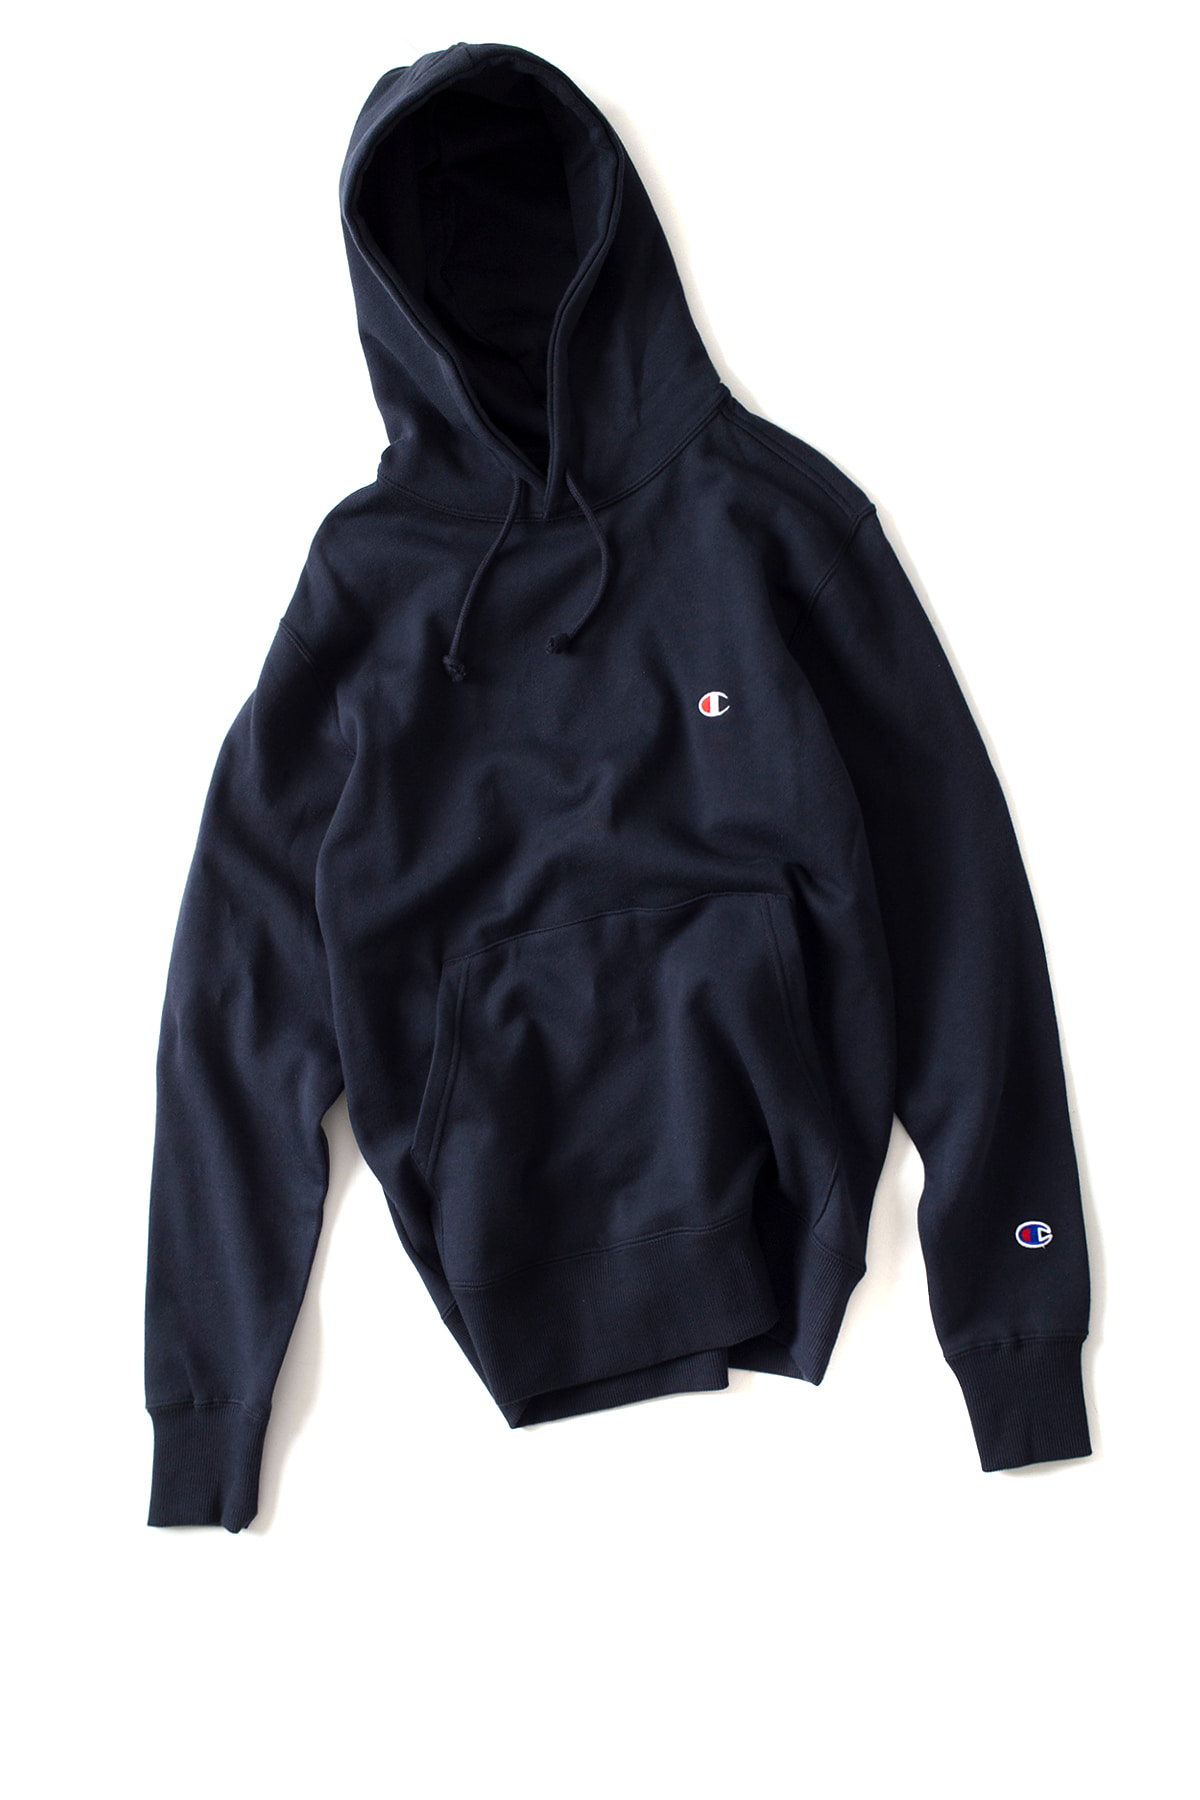 Champion : Basic Pullover Hooded SweatShirt (Navy)